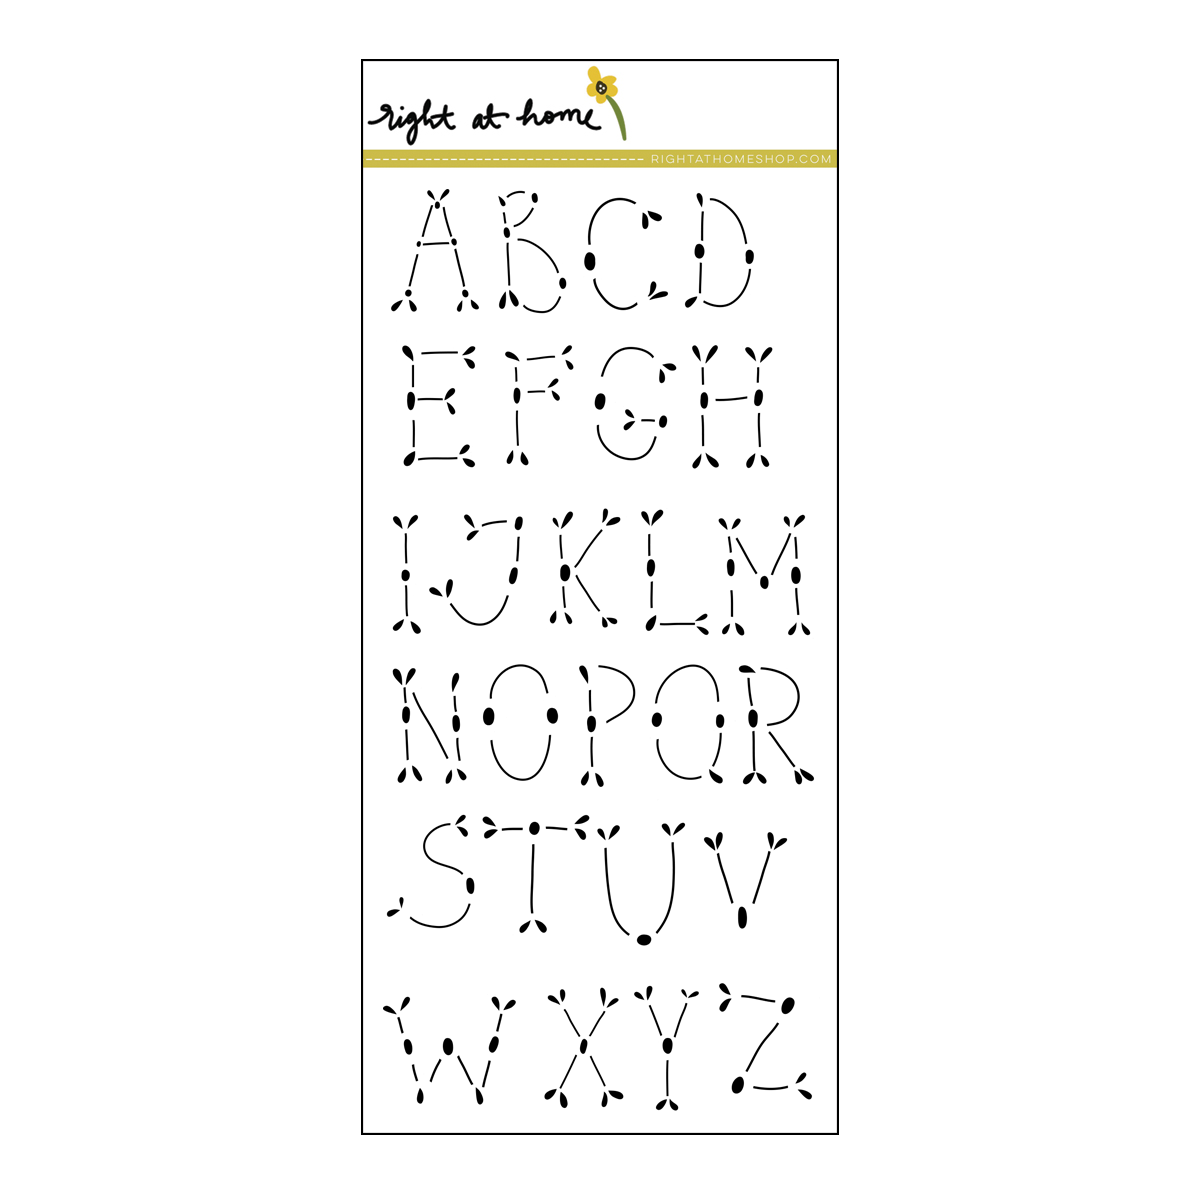 Right at Home Stamps // Folk Alphabet Detail (available at rightathomeshop.com)